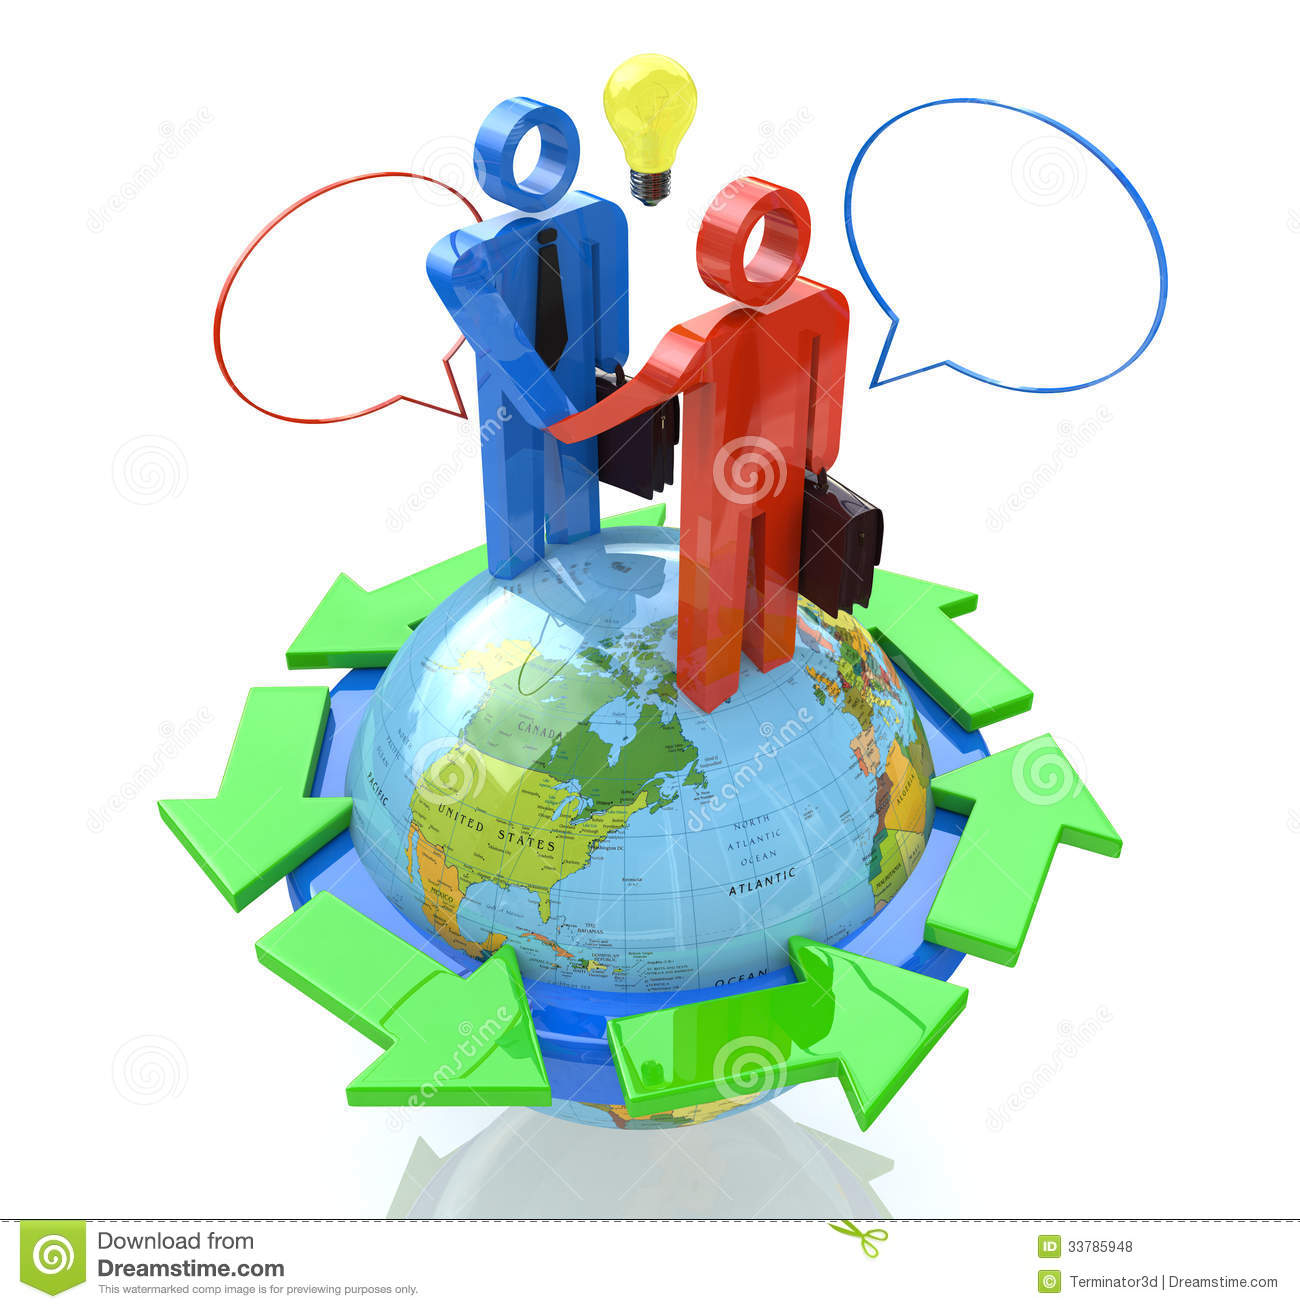 Global business meeting royalty free stock photos image for Global design company